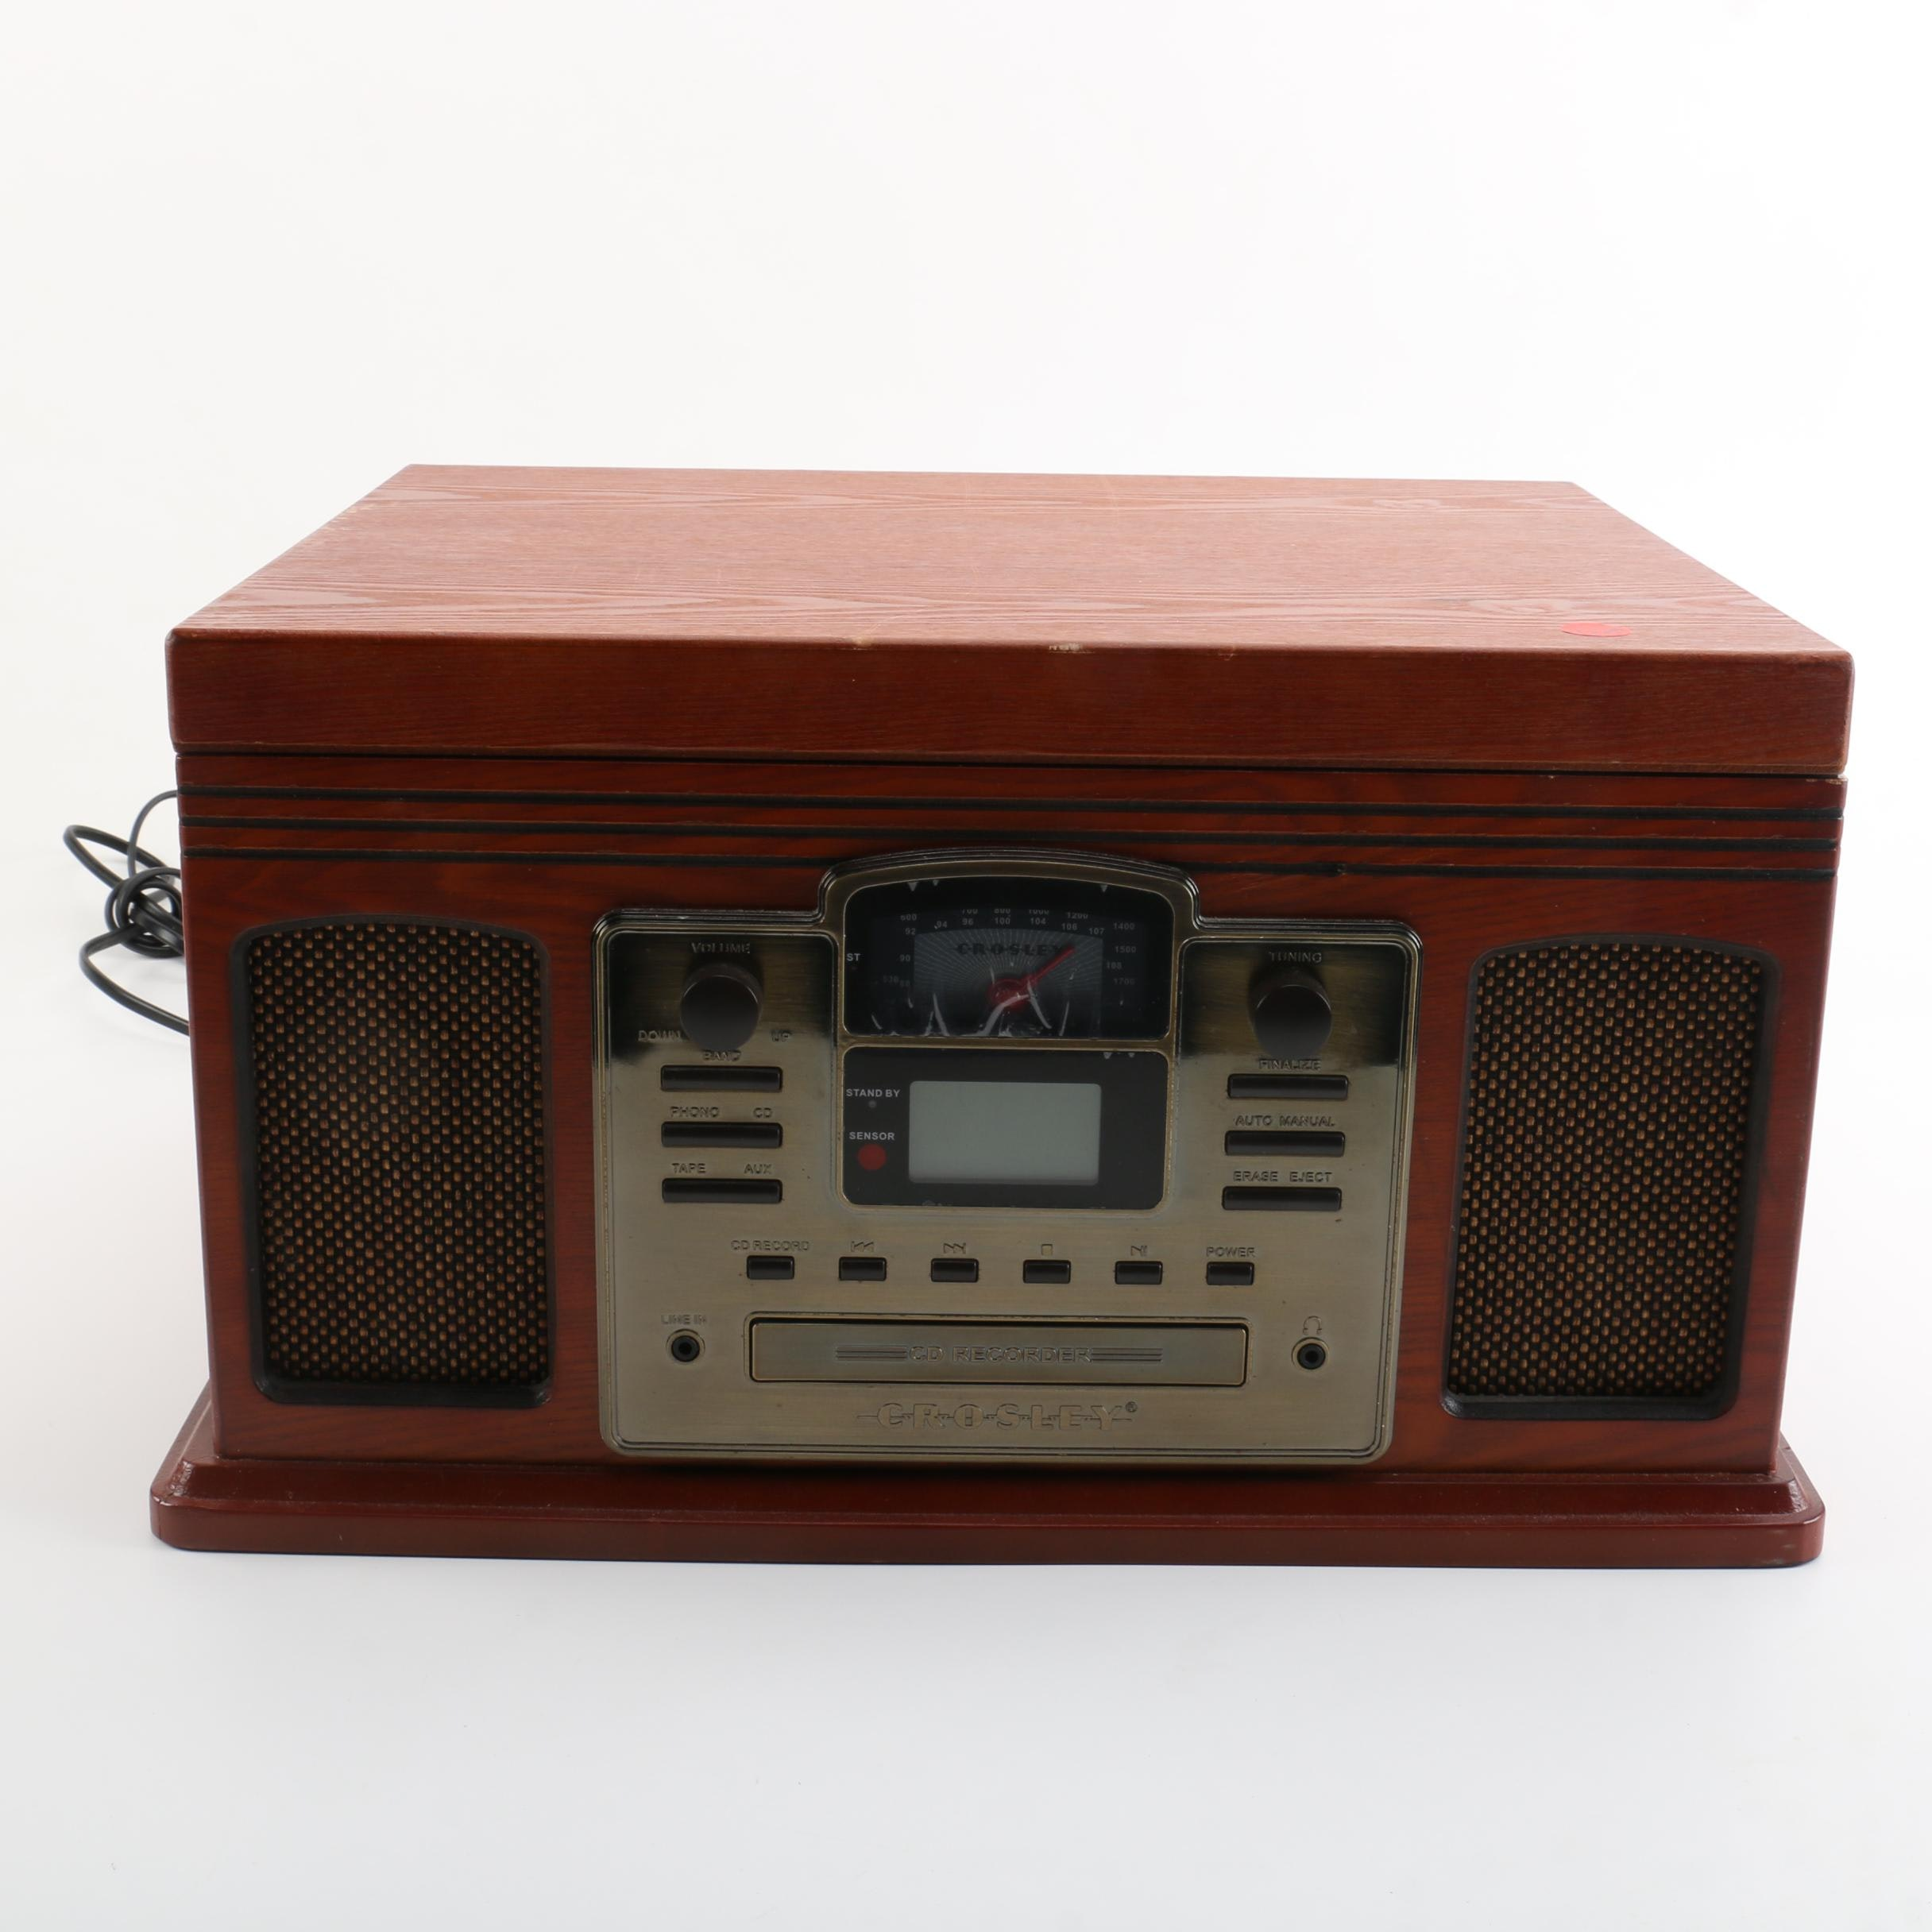 Crosley CD Recorder Turntable and Cassette Player